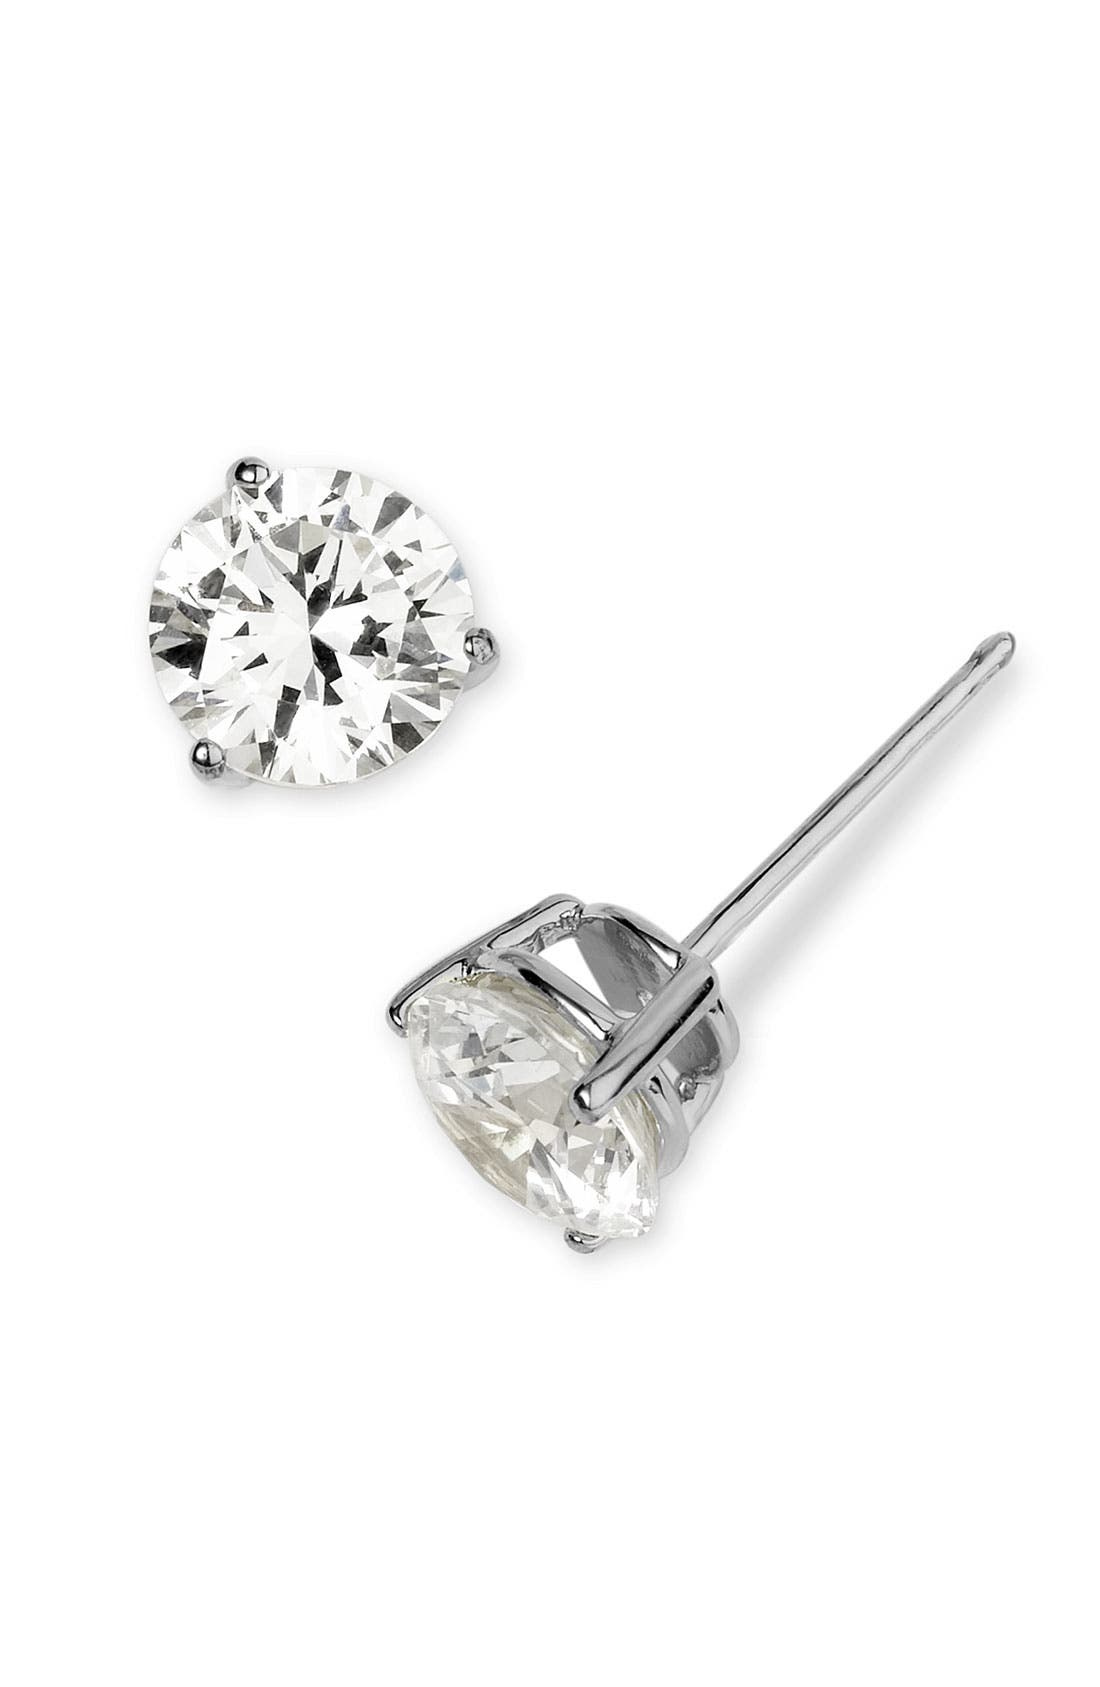 NORDSTROM, 3ct tw Cubic Zirconia Earrings, Alternate thumbnail 4, color, PLATINUM